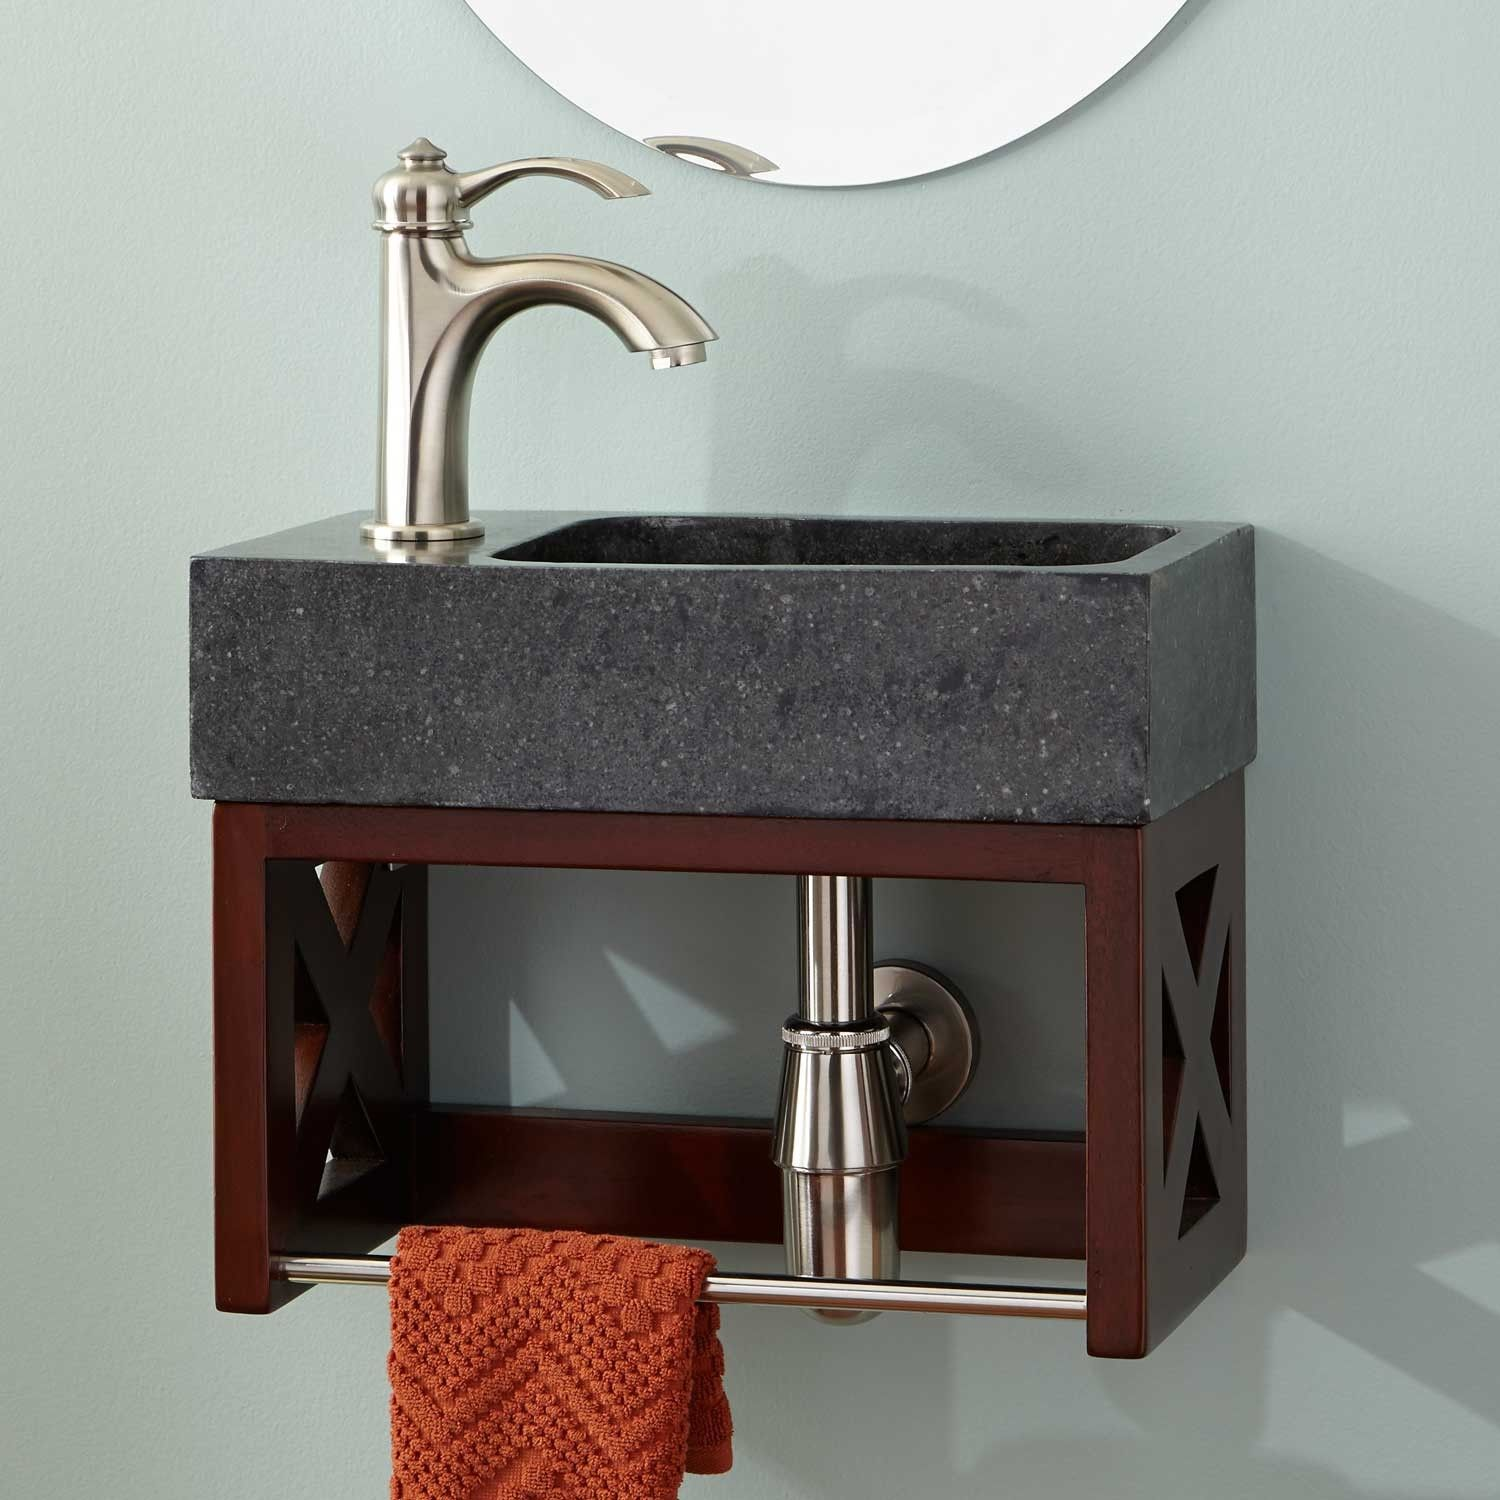 16 Ansel Mahogany Wall Mount Vanity With Towel Bar